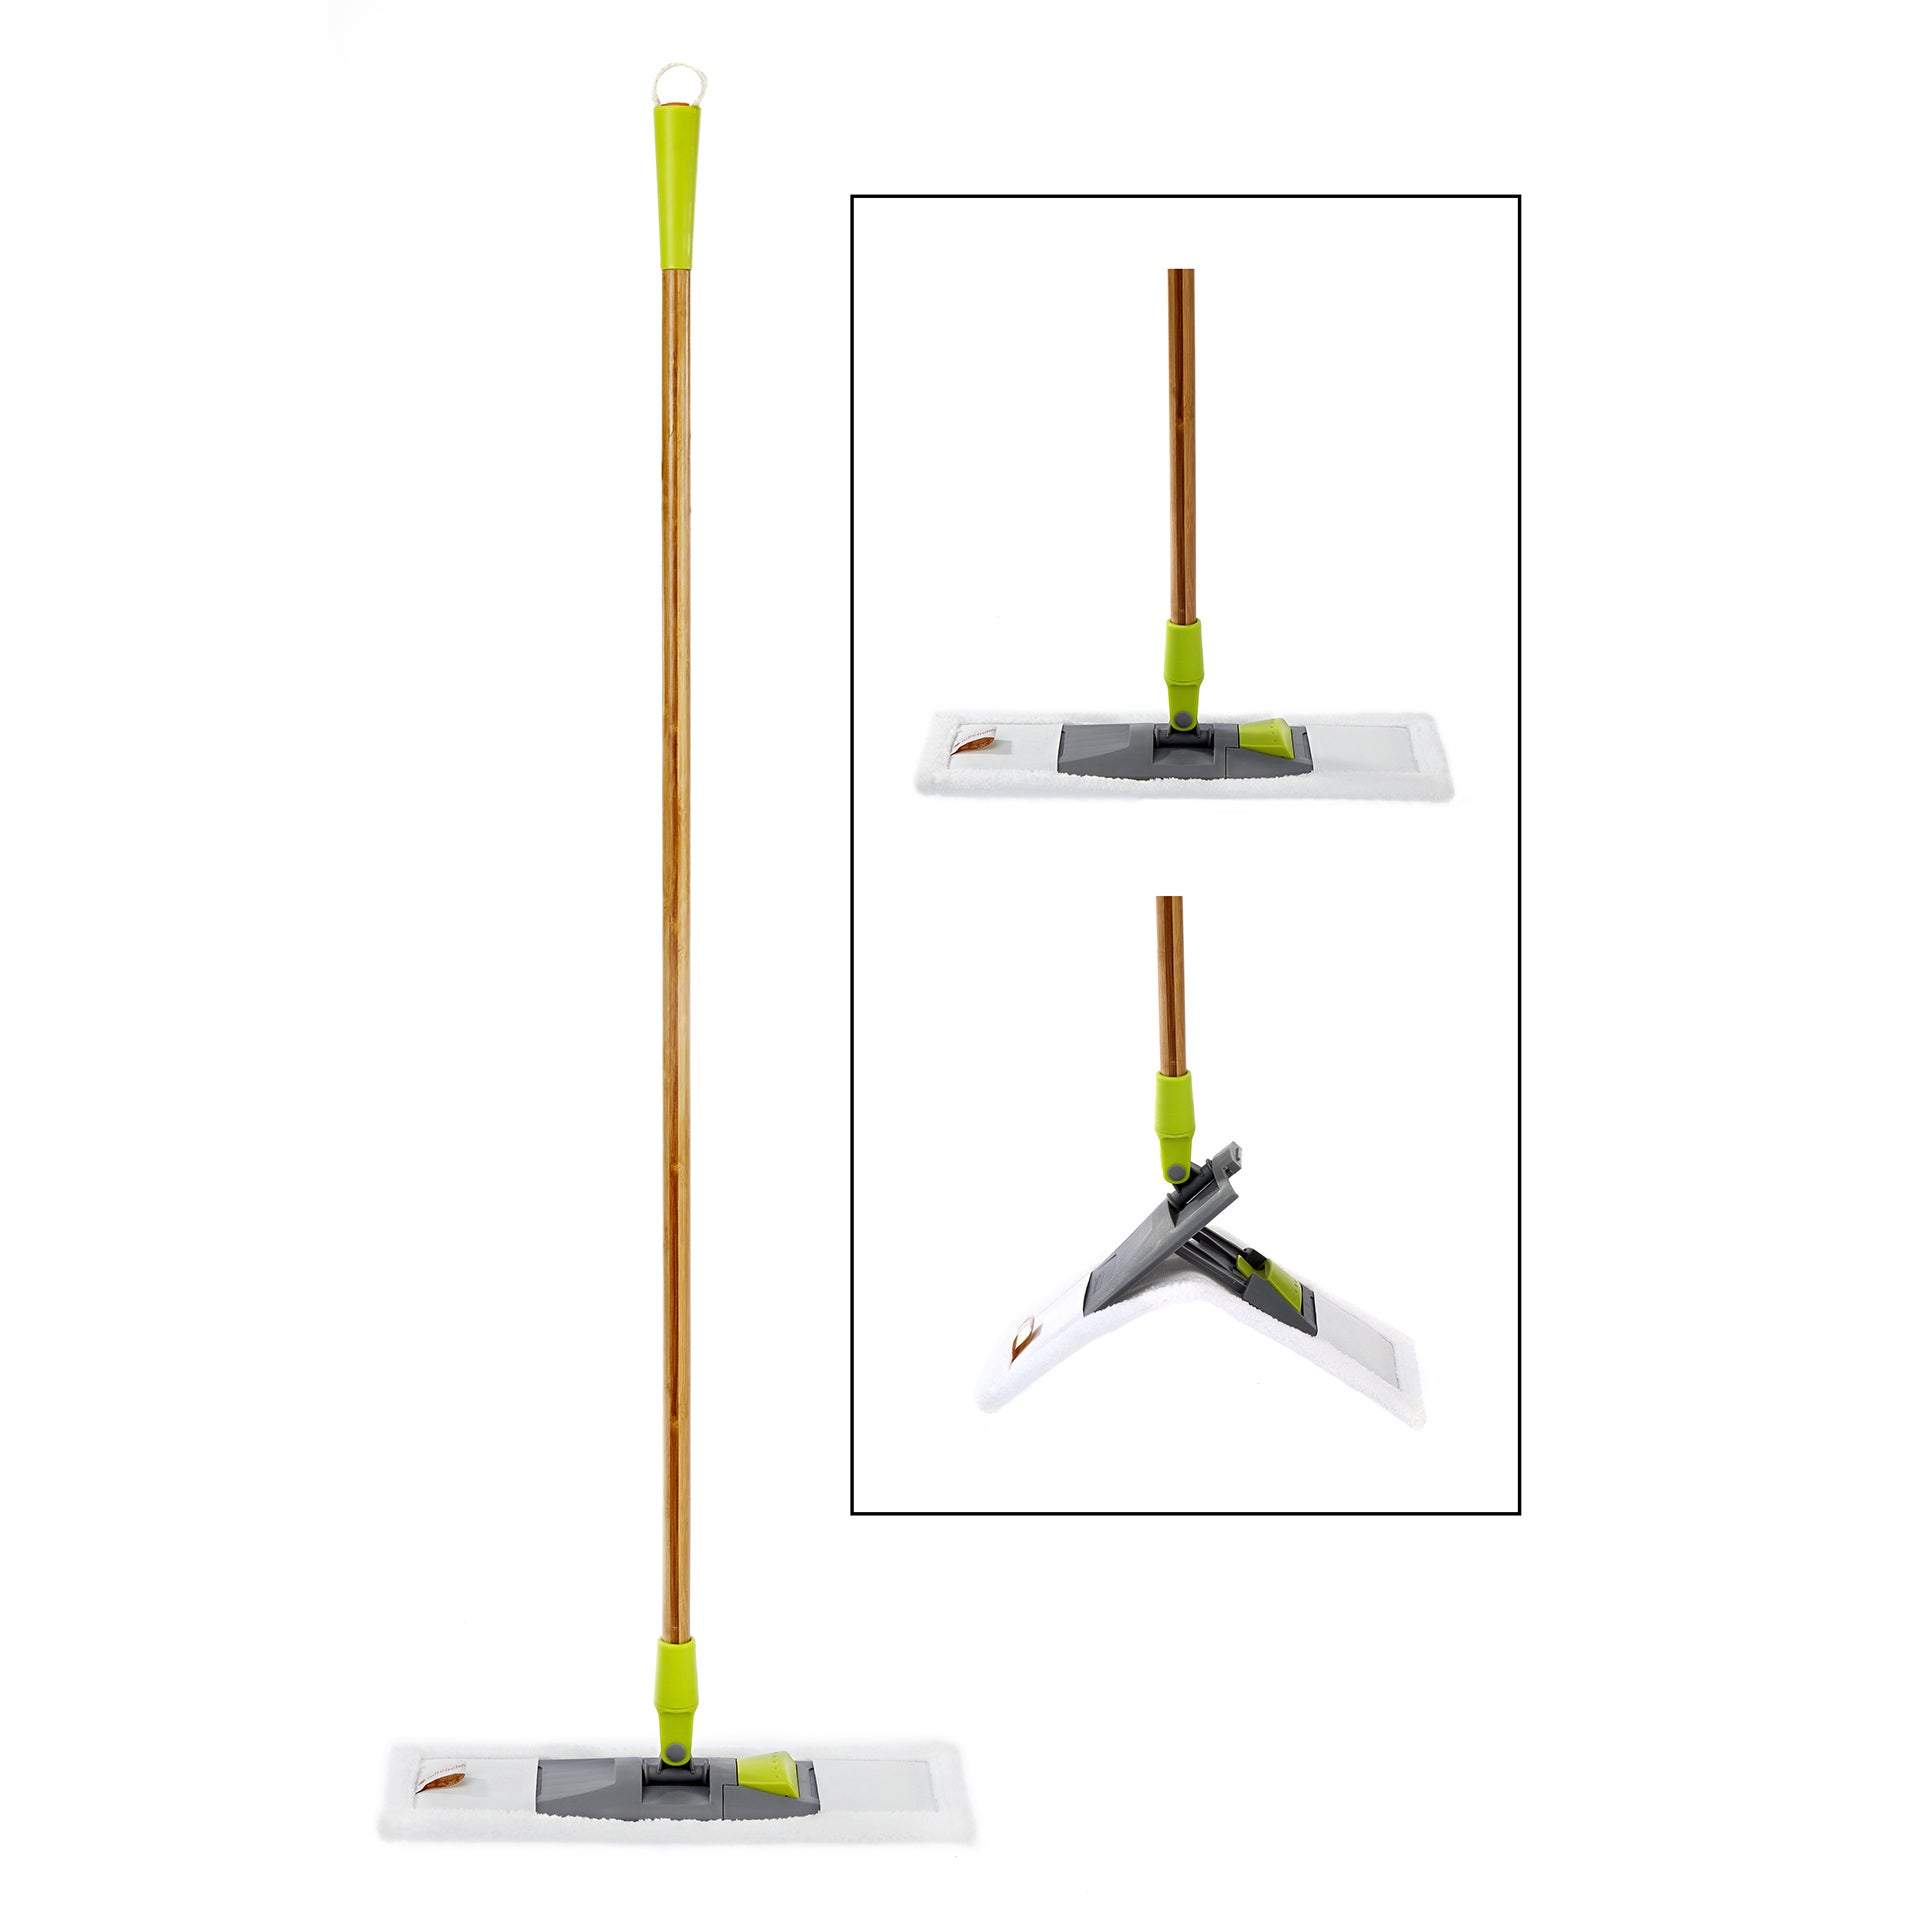 Full Circle FC14602 Mighty Wet/Dry Mop (Mighty Mop Wet/dr...